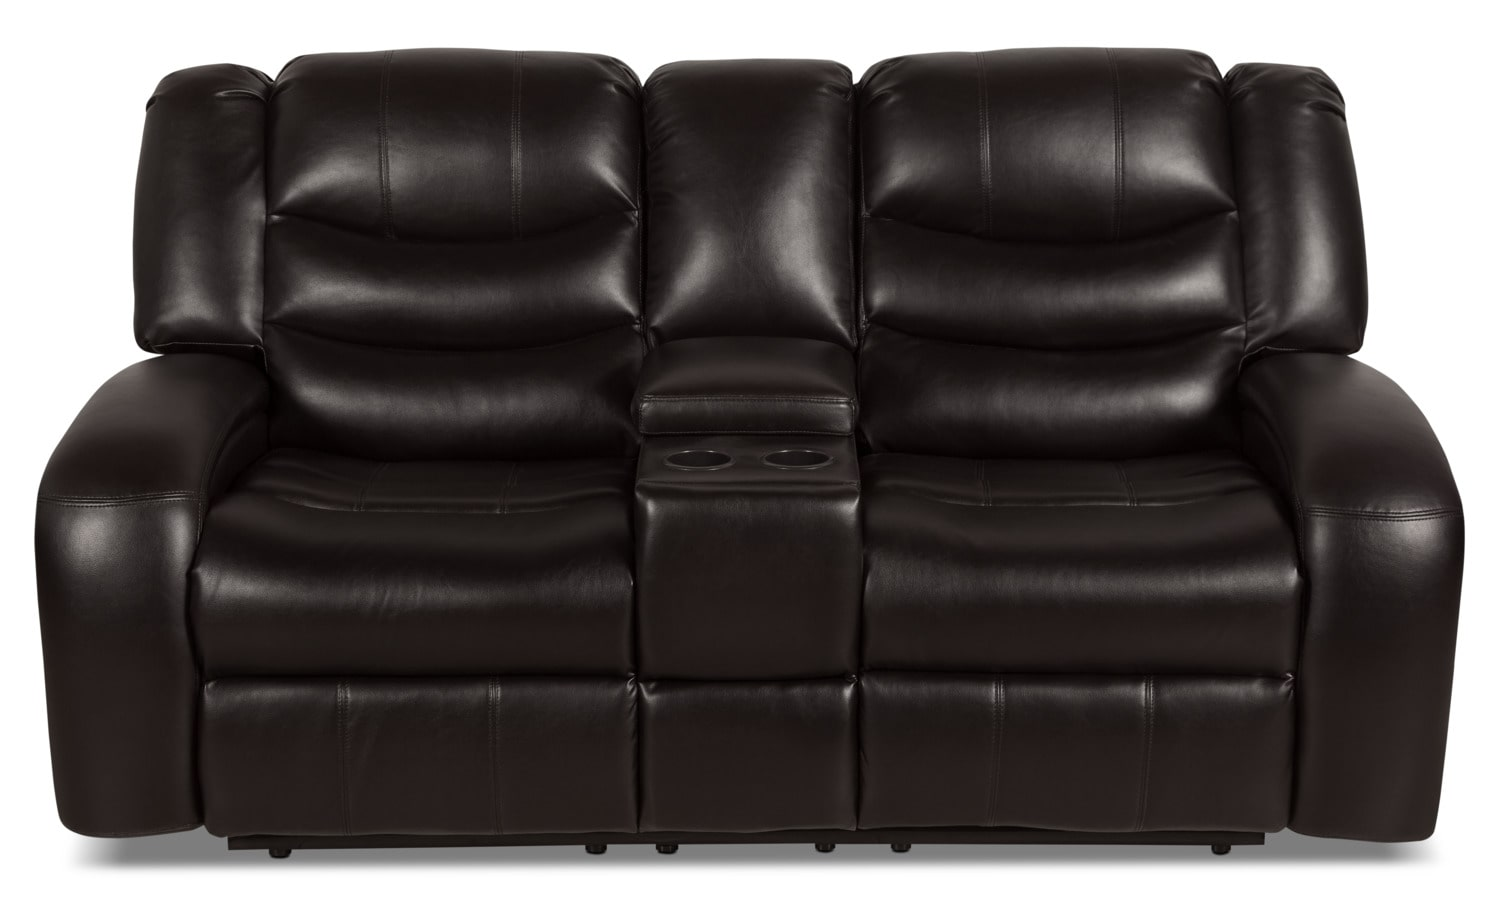 Angus Leather Look Fabric Power Reclining Loveseat Dark